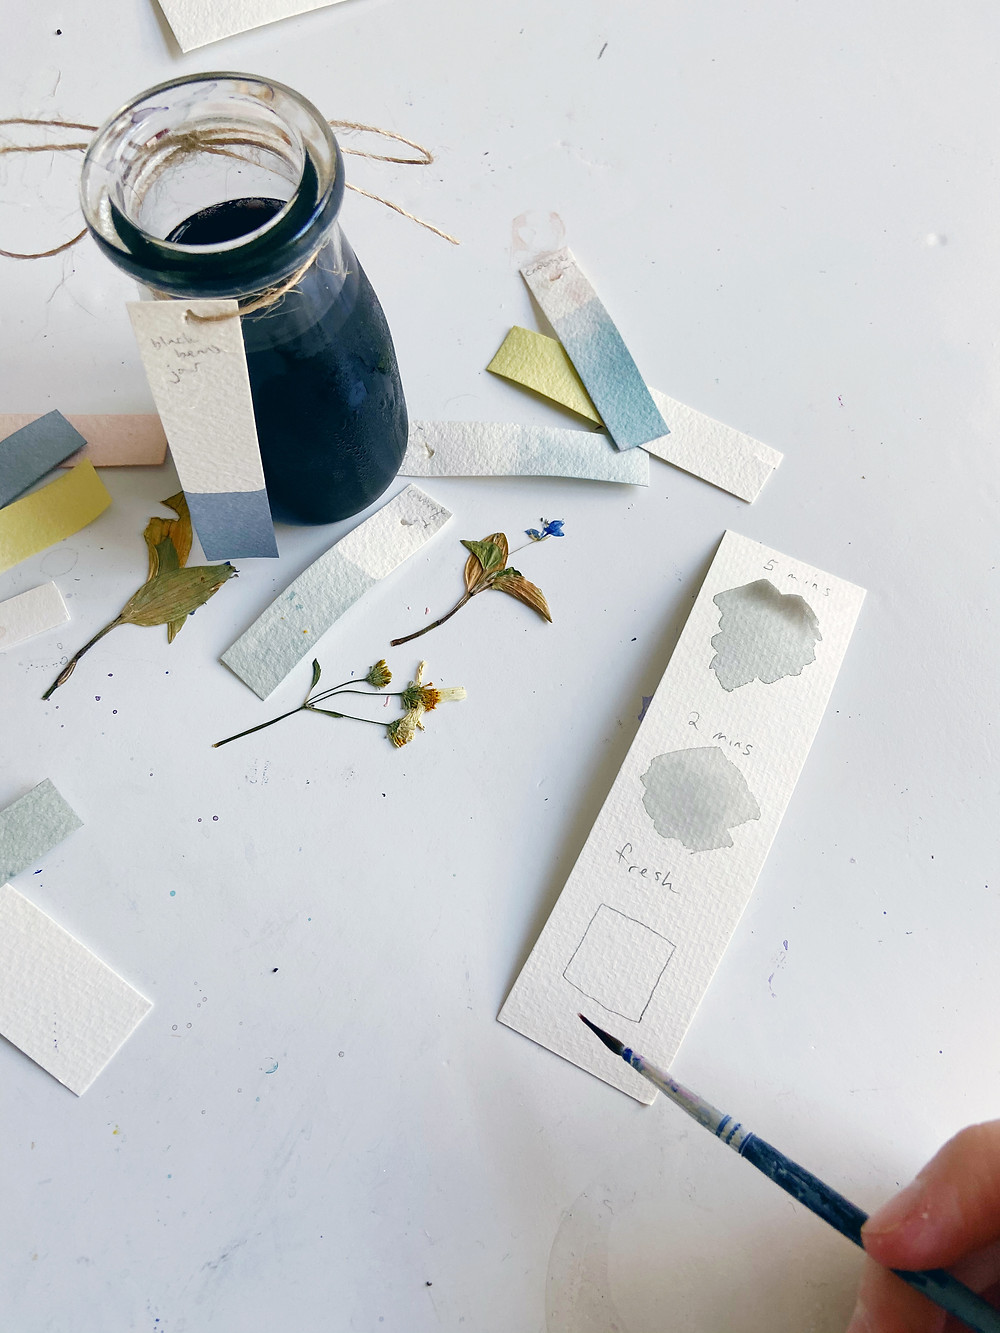 a bottle of natural ink sits beside dried flowers, swatches of different colors, and a piece of paper showing the color change over time when using eggplant ink